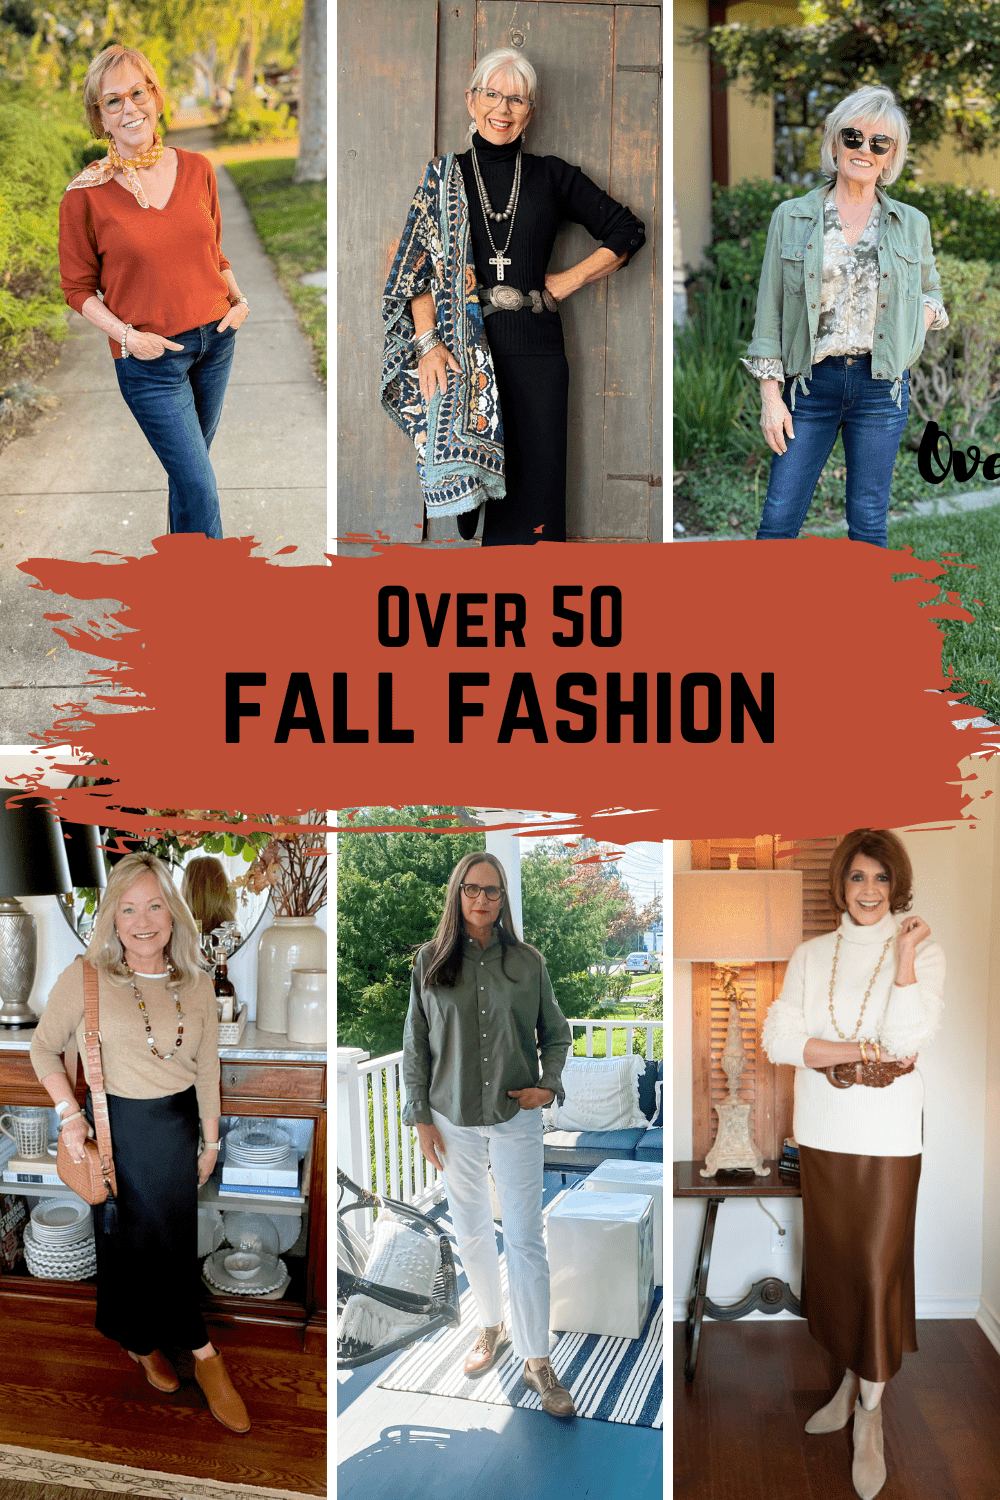 over 50 fall fashion graphic